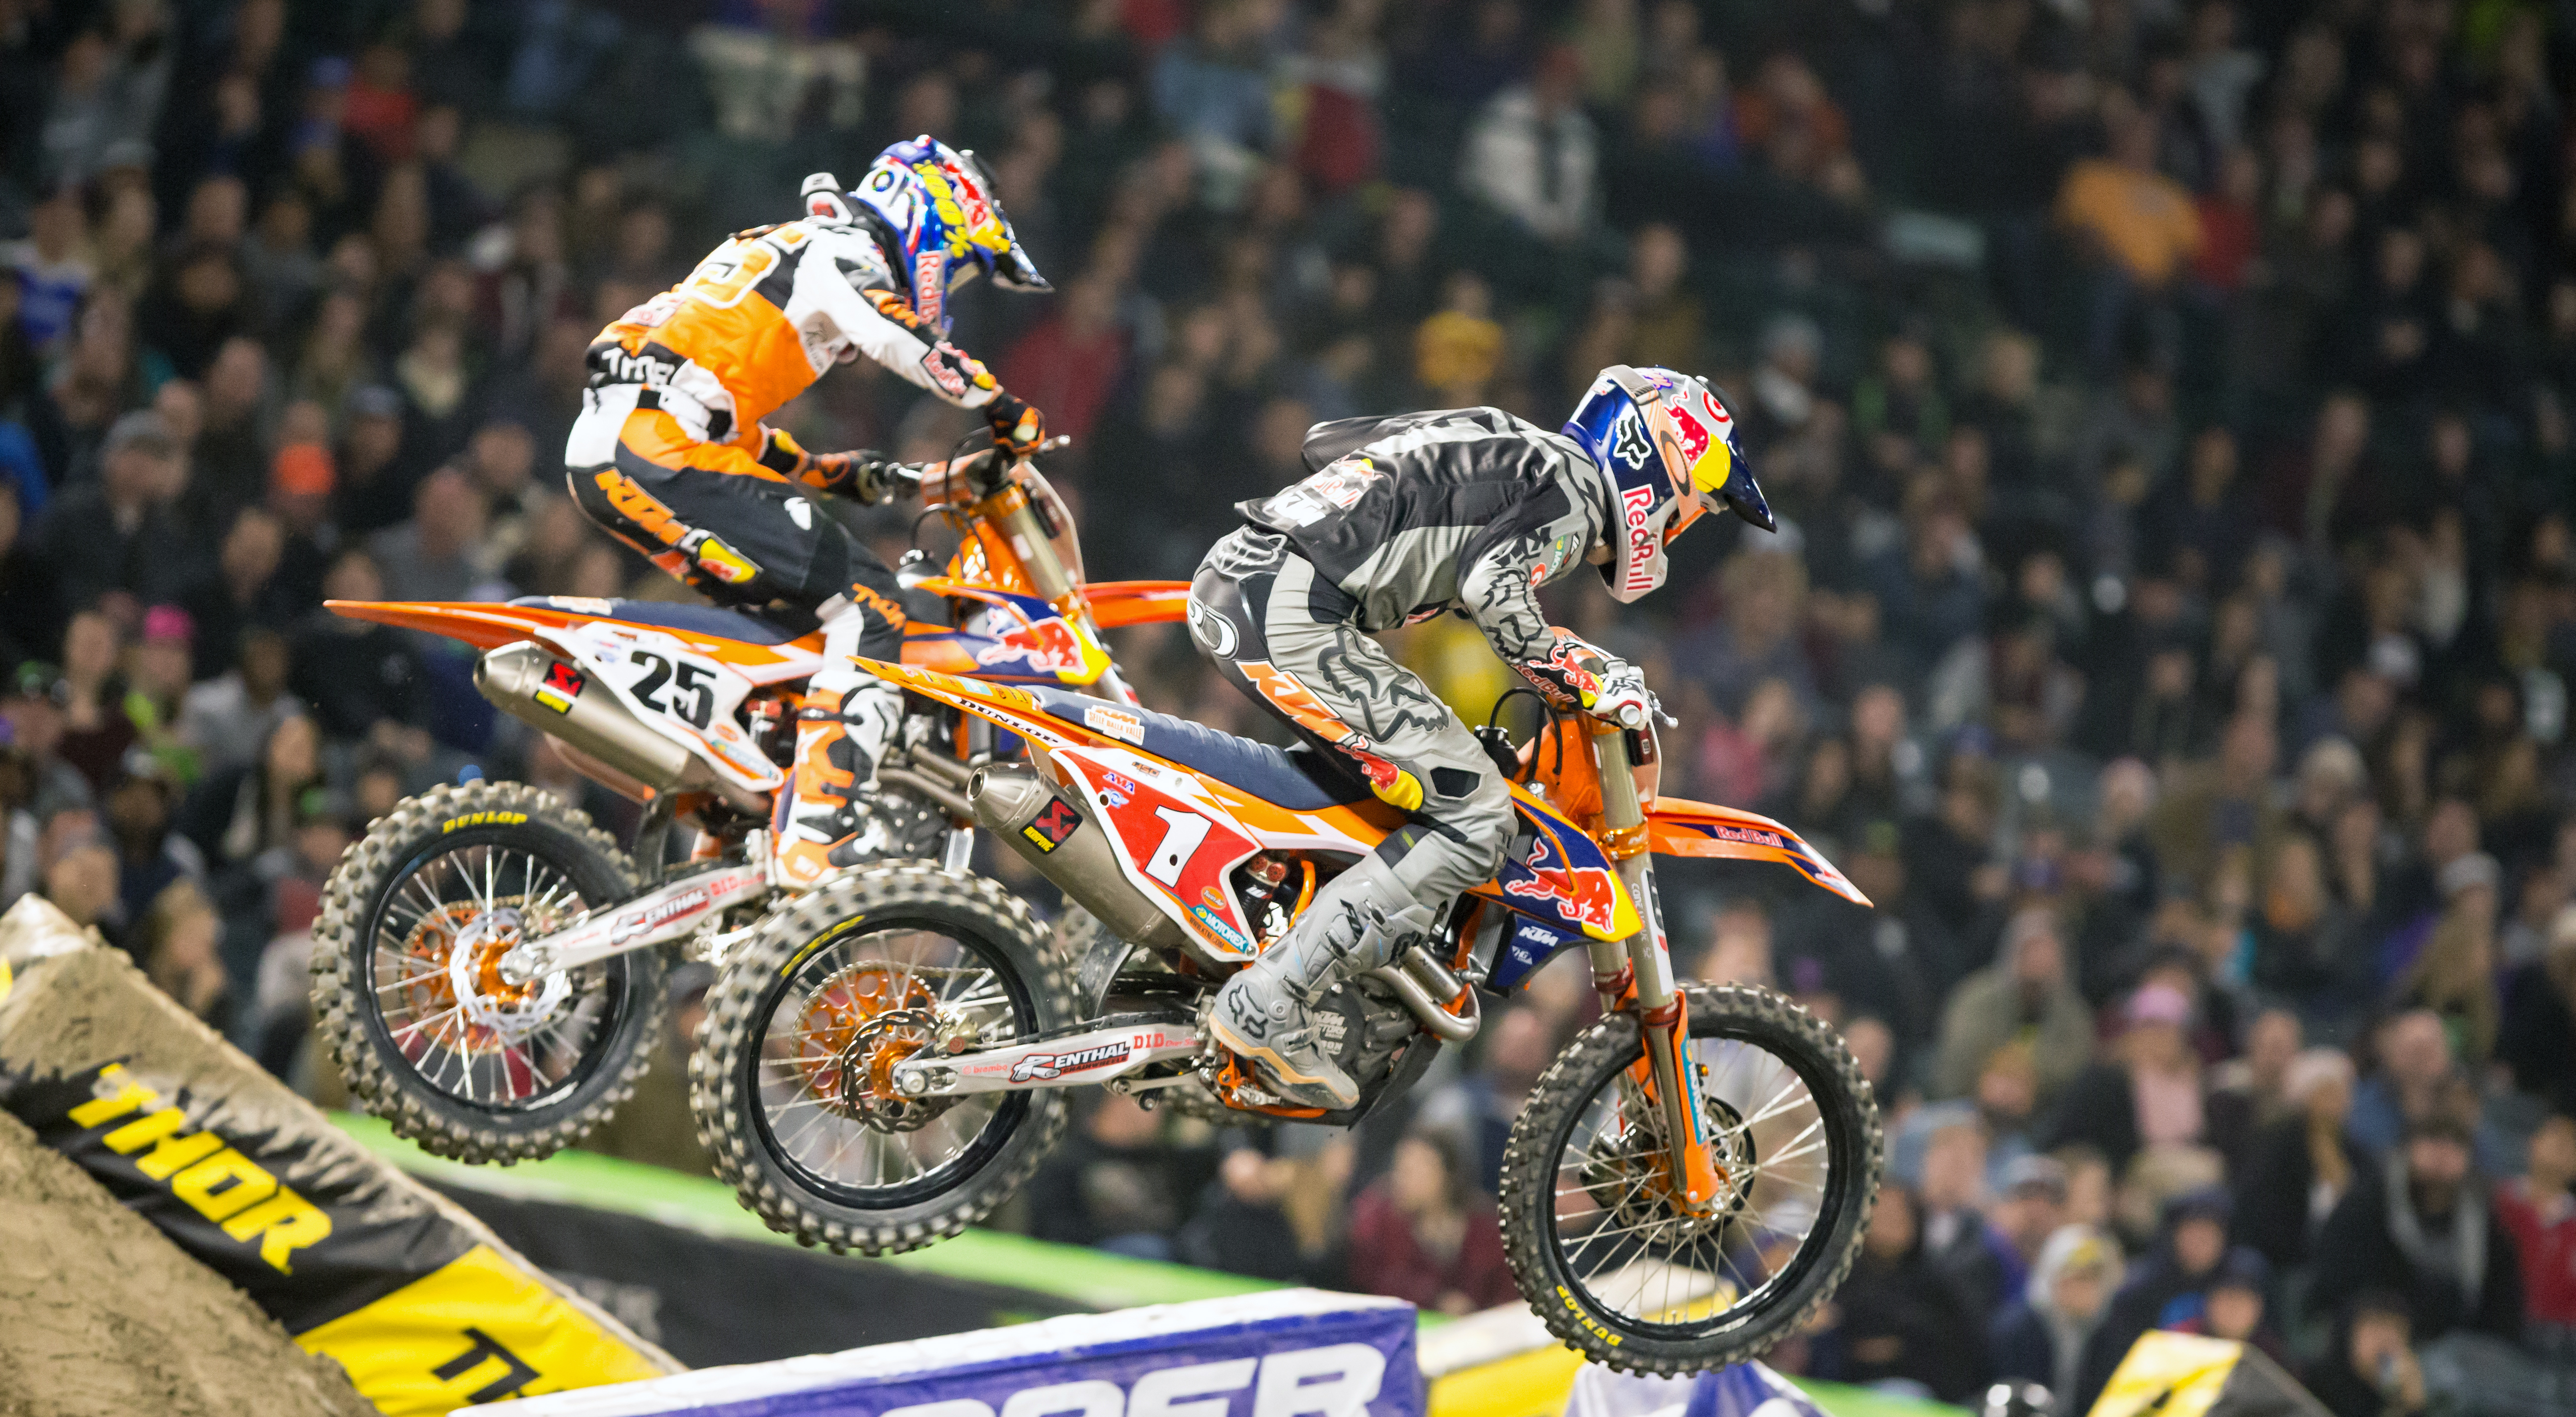 Dungey battles teammate Marvin Musquin en route to a second place finish in the season opener in Anaheim.